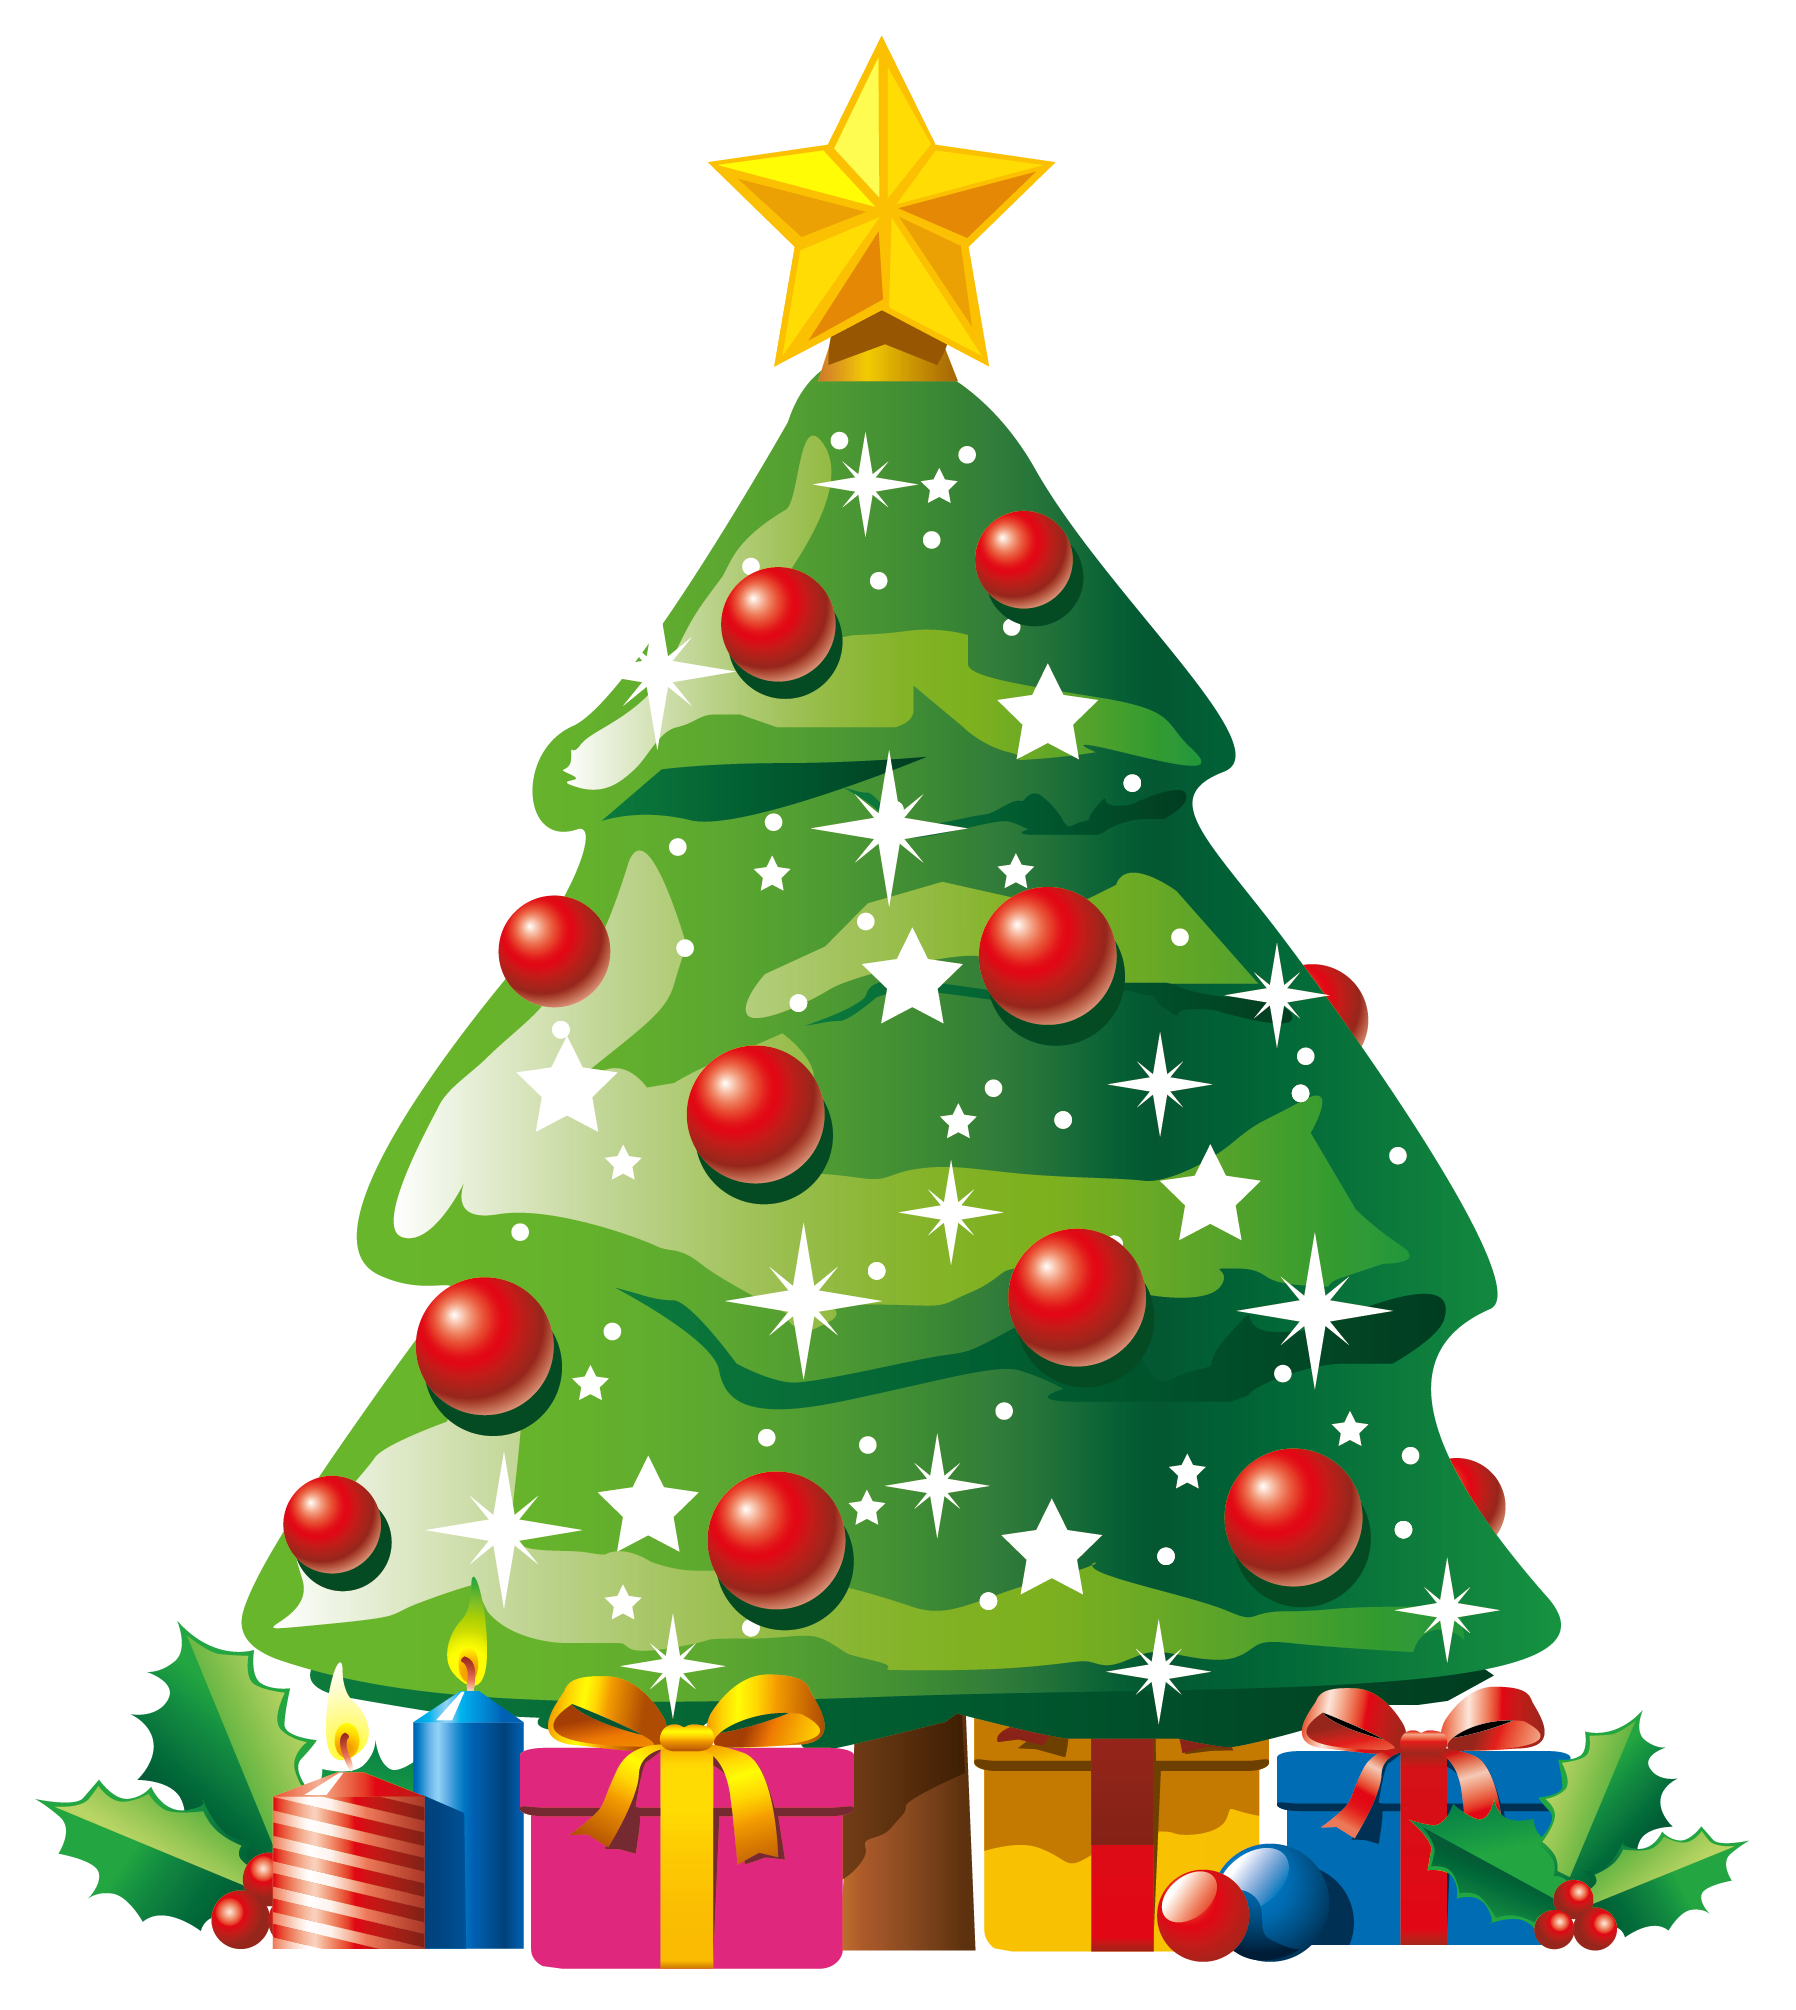 christmas tree 3 essay Christmas tree essay sample pages: 3 get full essay but what's common among all these is that each home has a wonderful christmas tree to put gifts under.